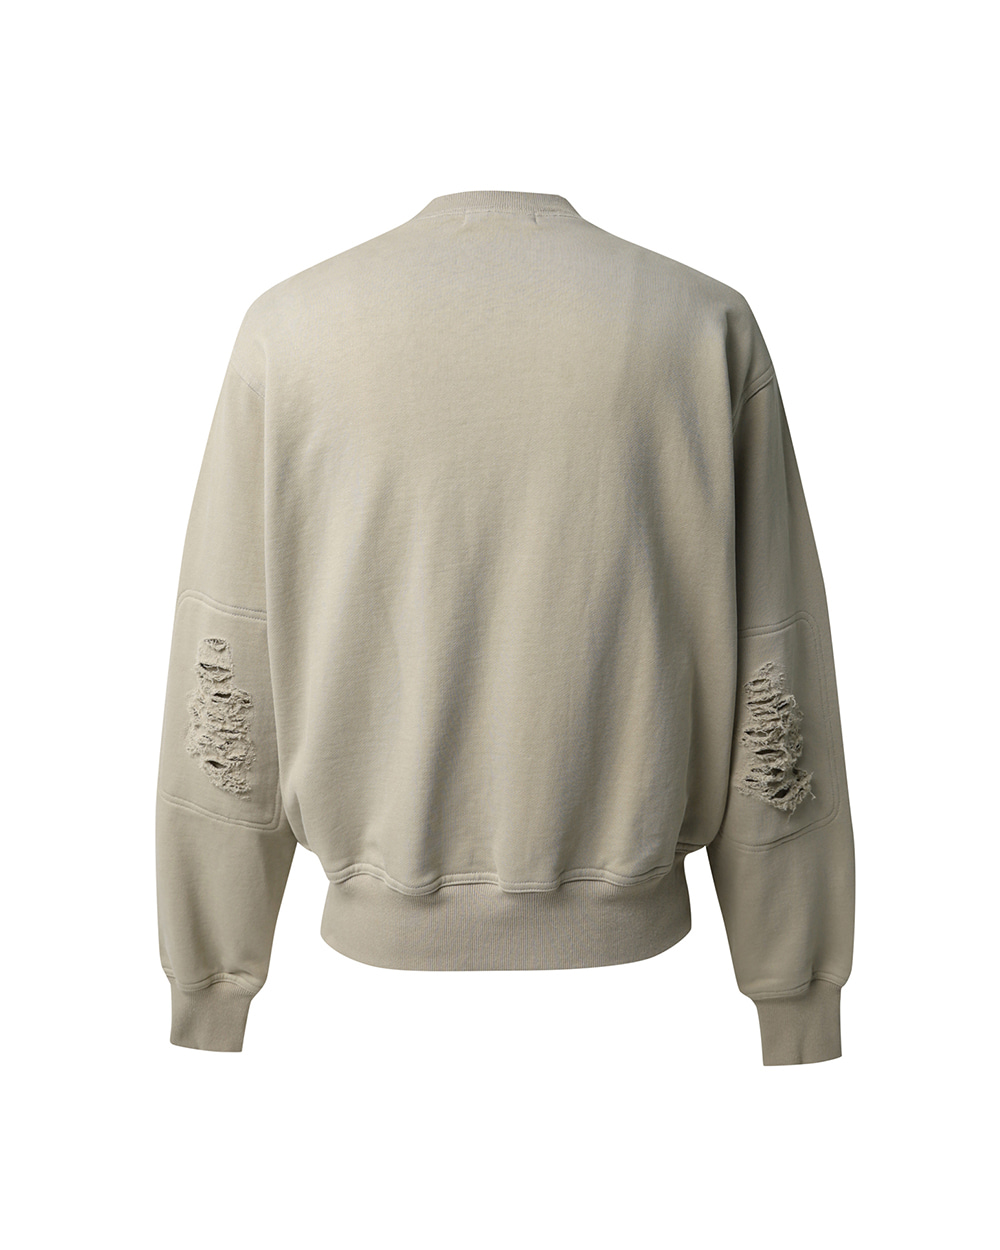 ATE STUDIOS AUTHENTIC SCAR SWEAT SHIRTS (Beige)